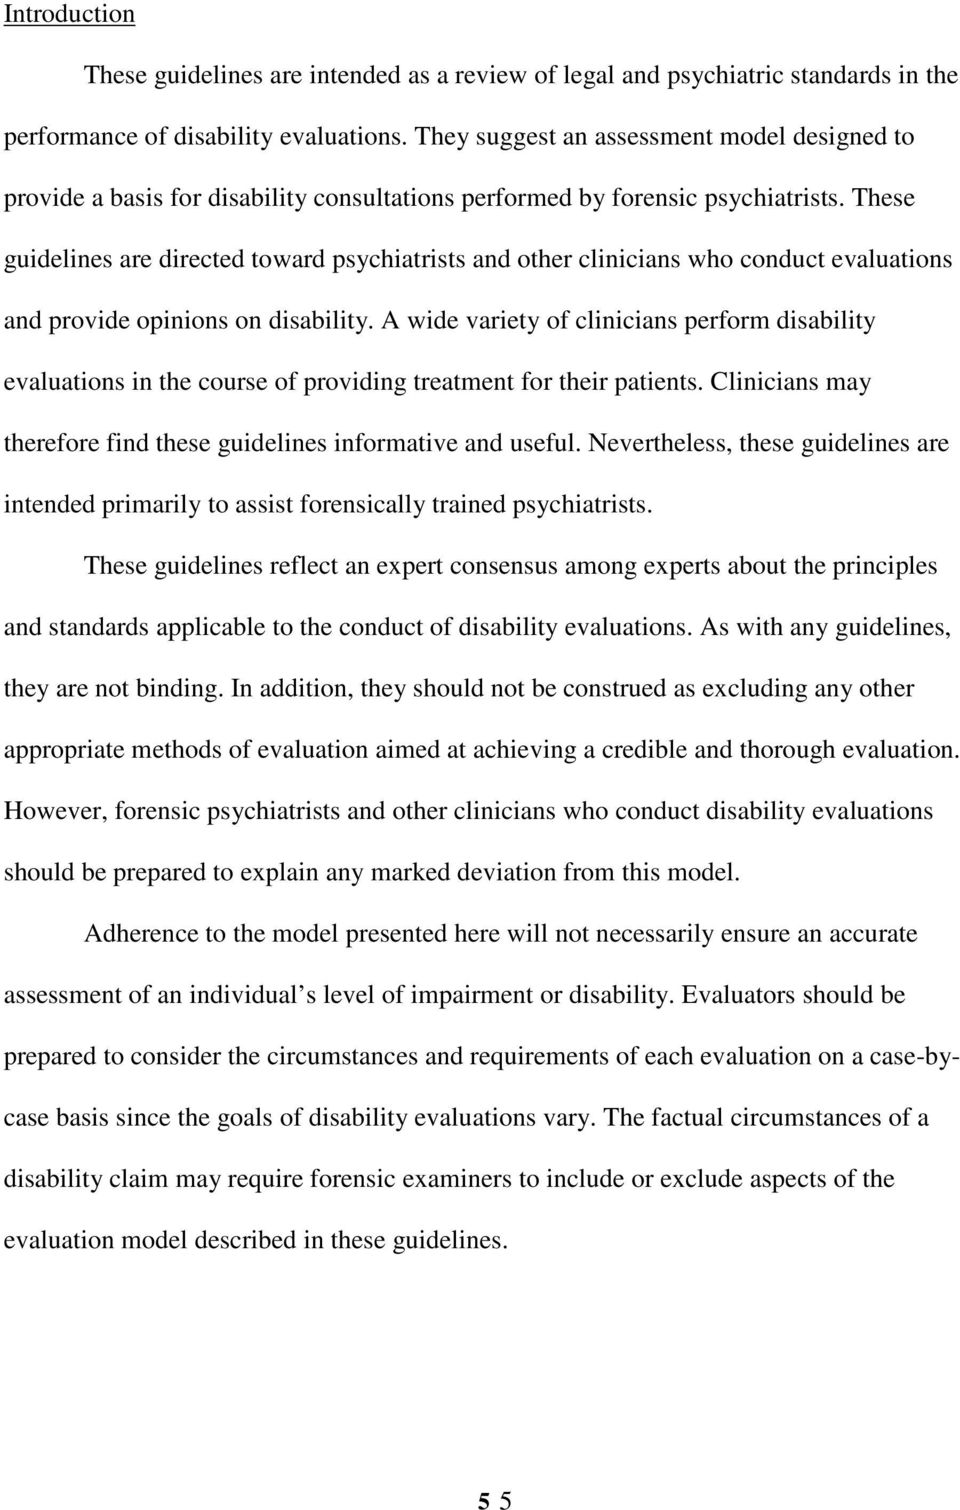 These guidelines are directed toward psychiatrists and other clinicians who conduct evaluations and provide opinions on disability.